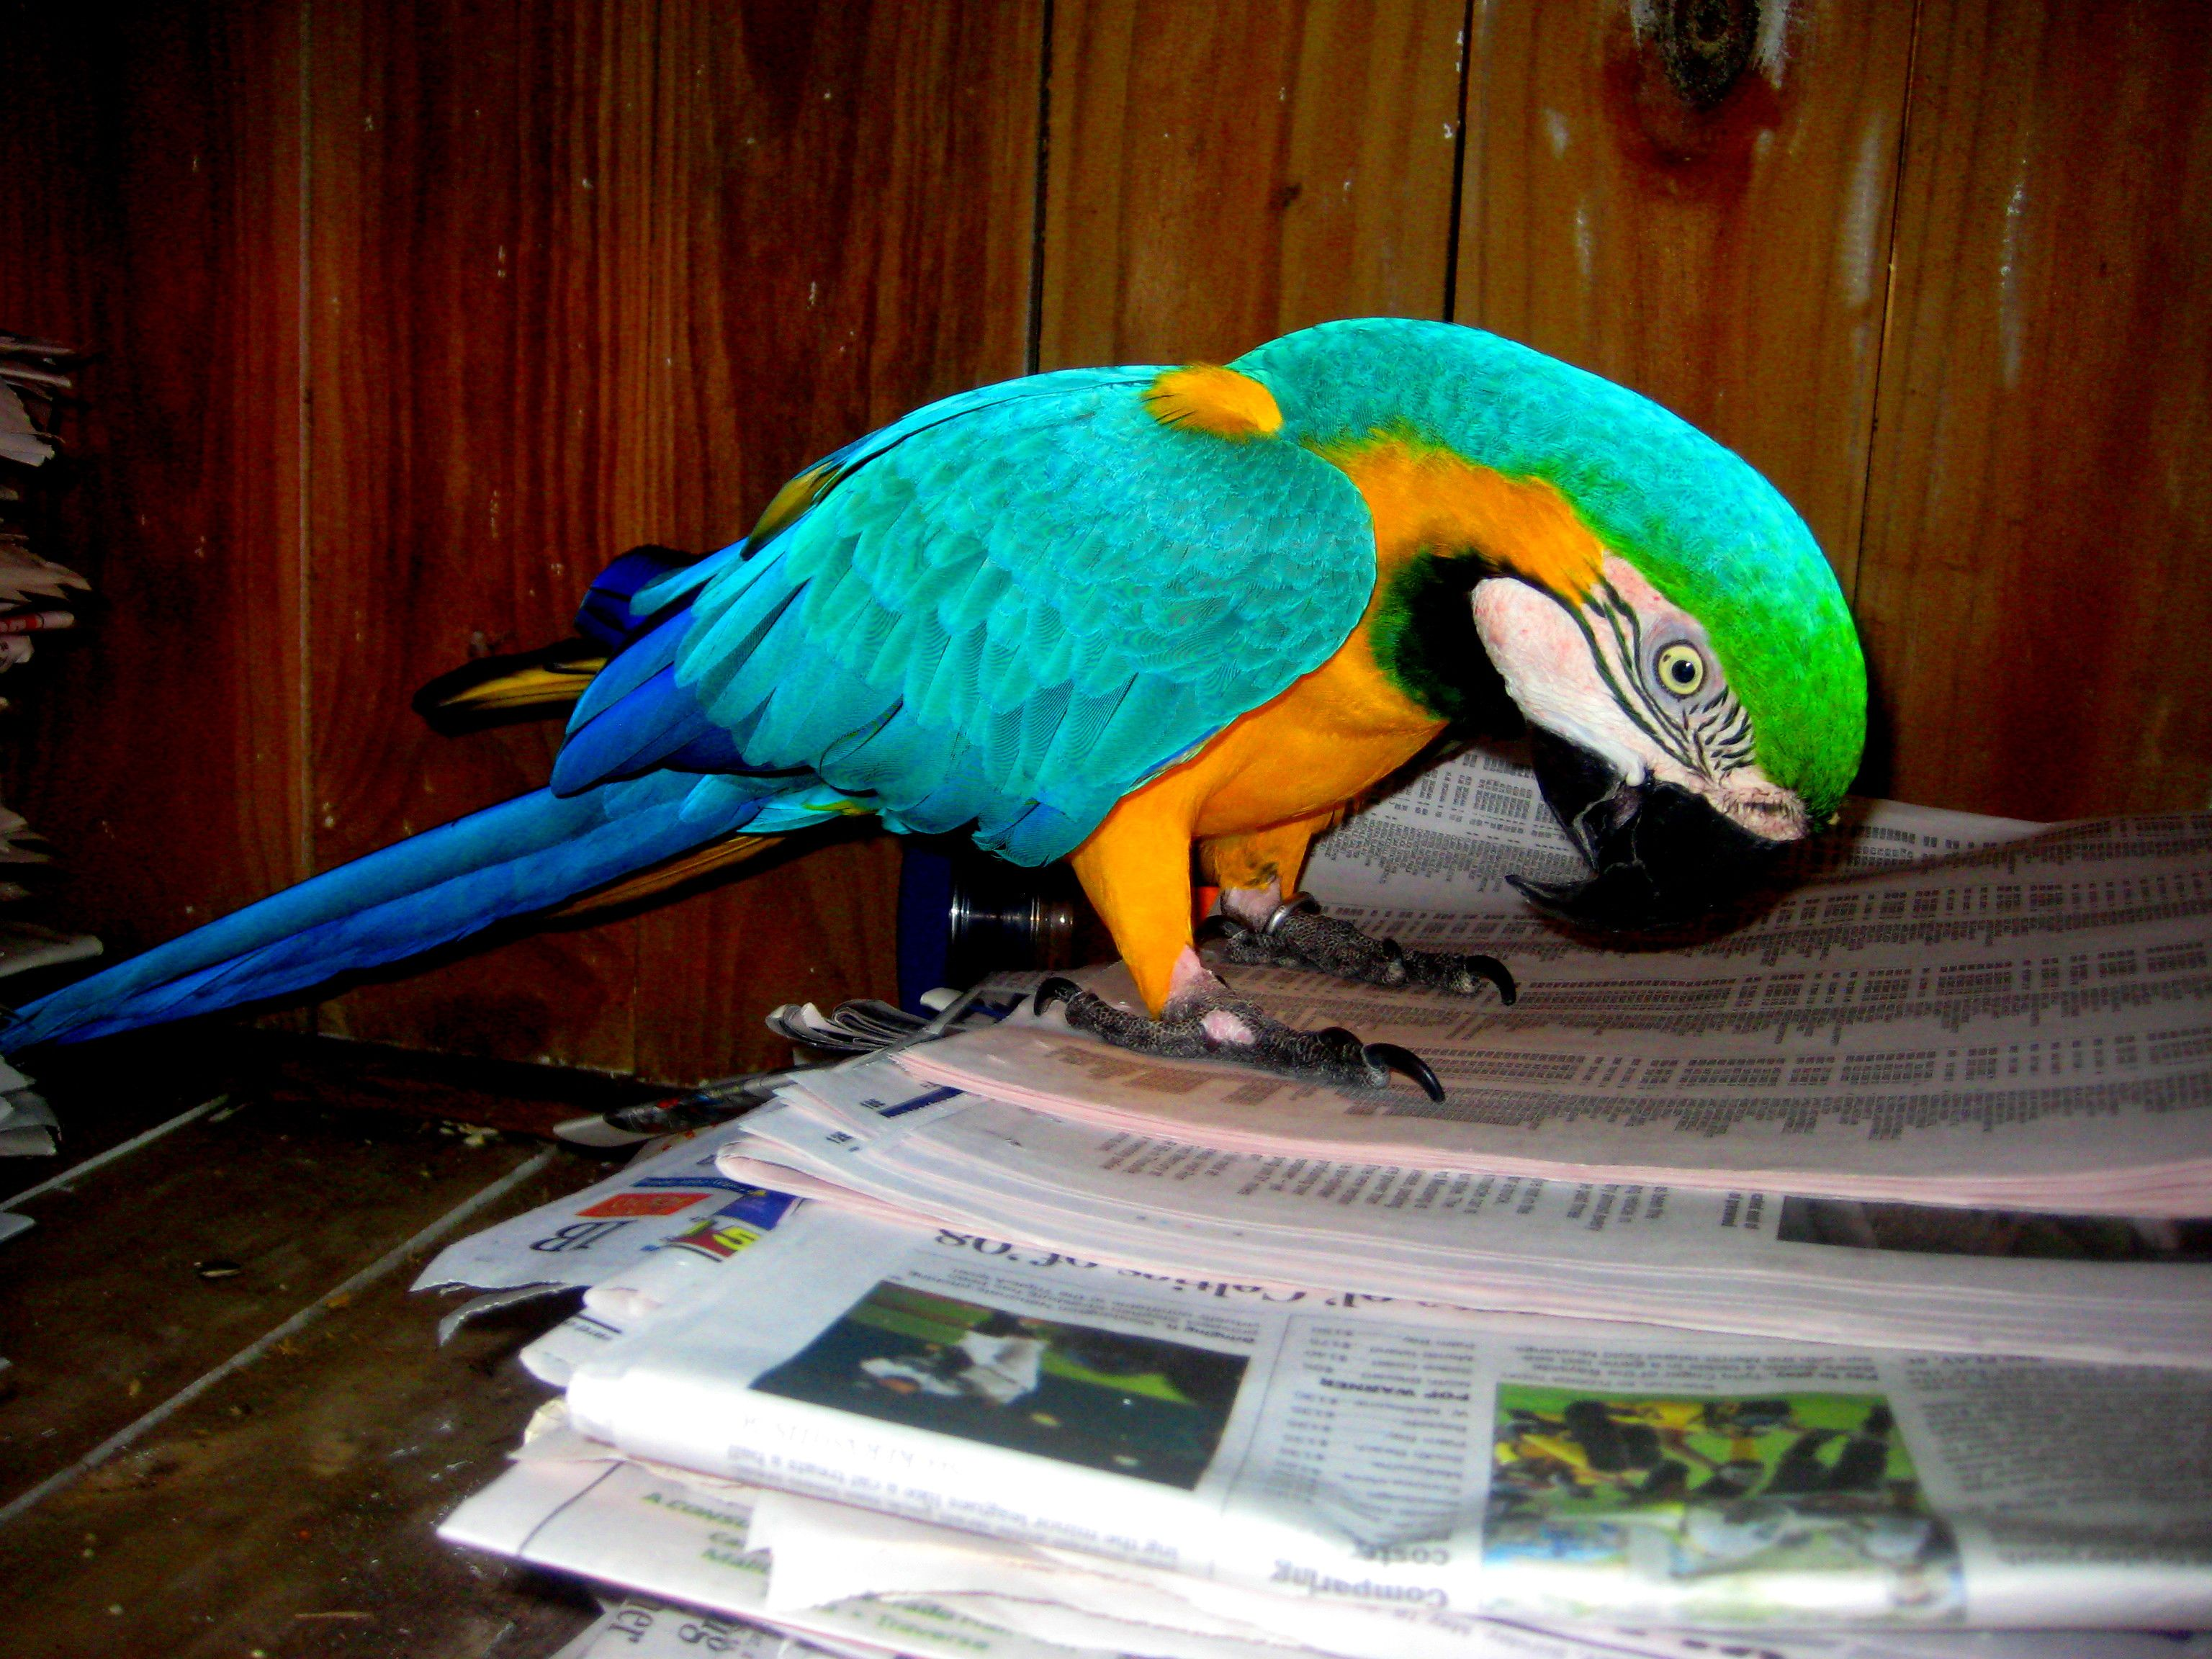 Macaw Reading The Newspaper At M A R S Melbournebeach Florida Parrot Rescue Adoption Nonprofit Marsparrots Birds Animals Cute Macaw Parrot Avian